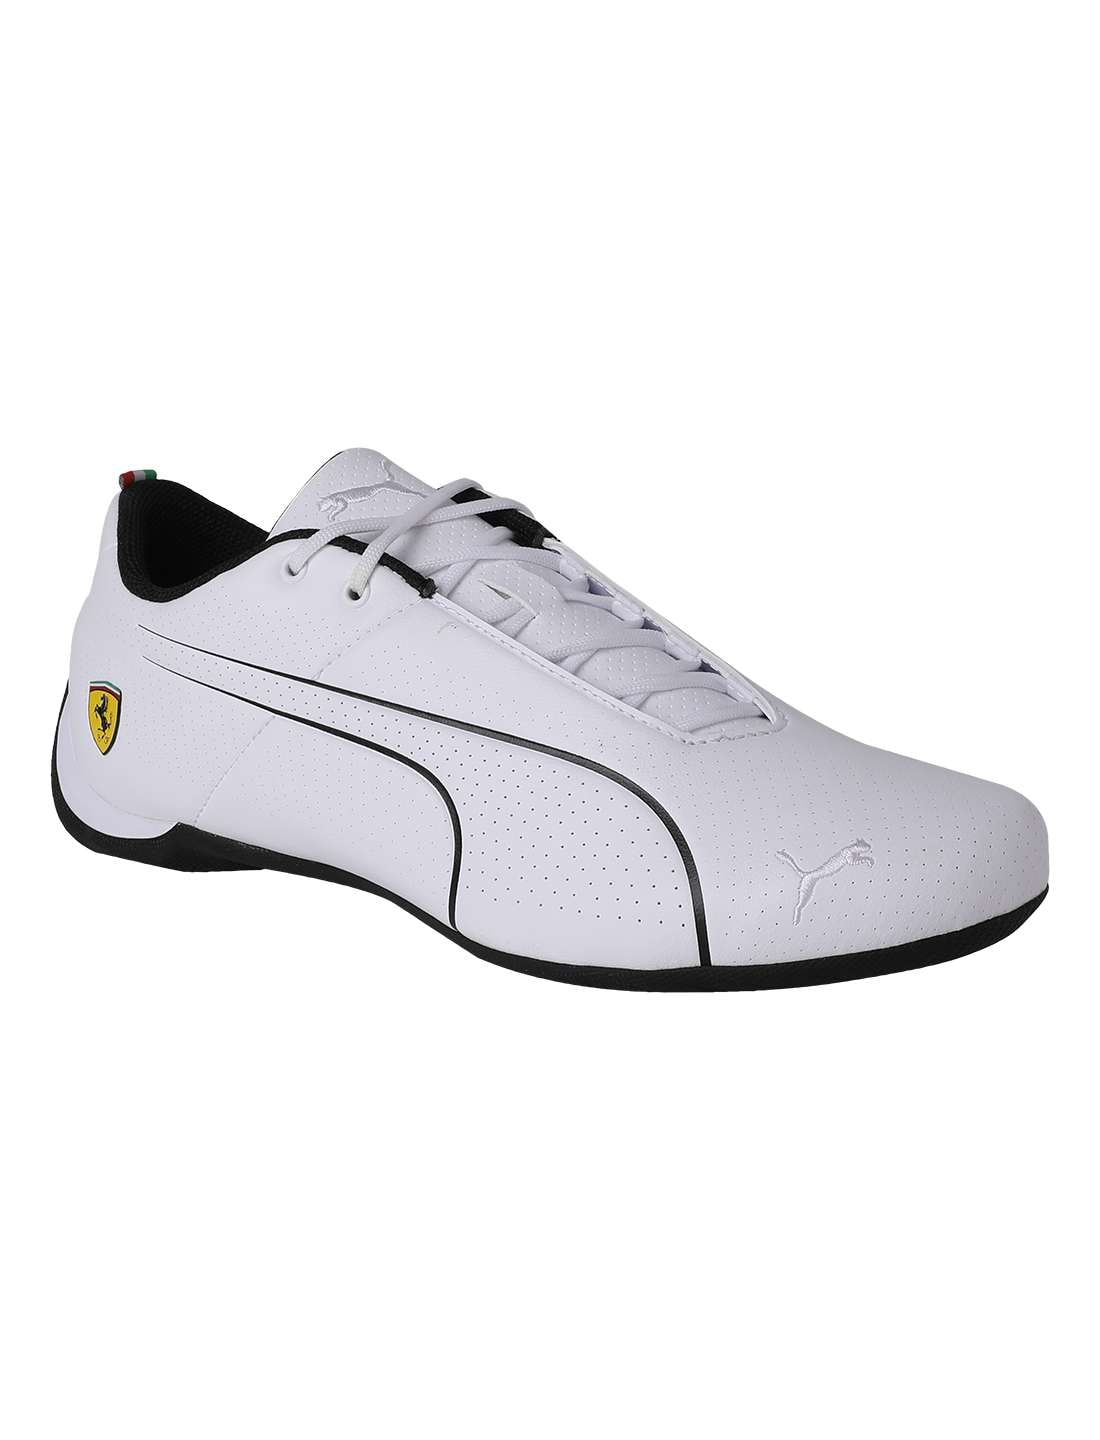 4f2cf40be5ab4f Buy Puma Men White Sneakers - 30624103 Online at Low Prices in India ...